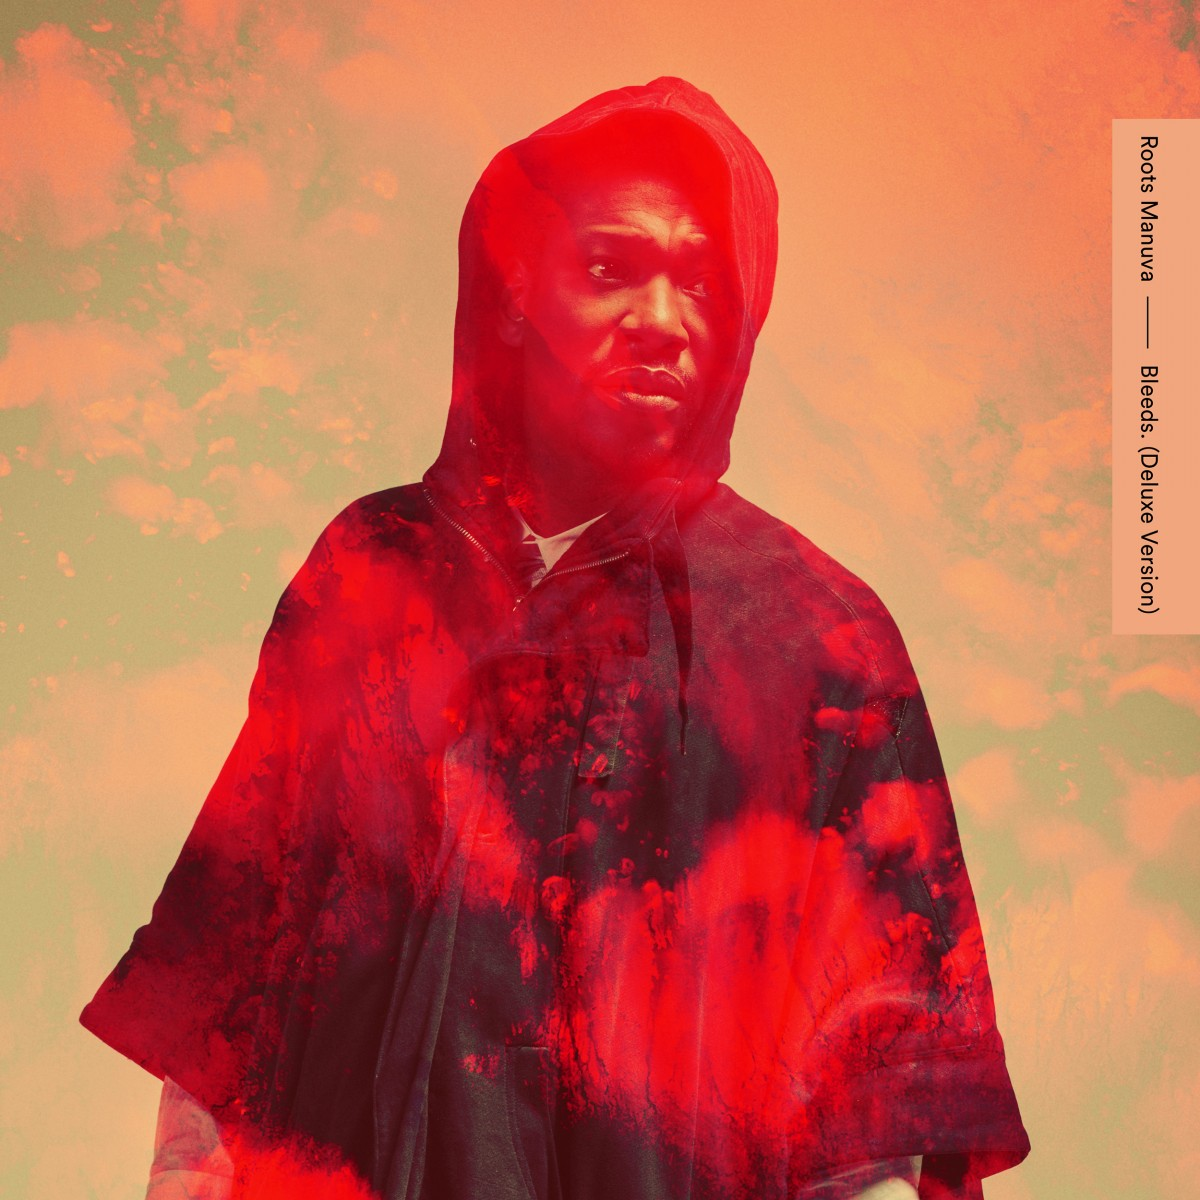 Roots Manuva - Deluxe Version design for Bleeds